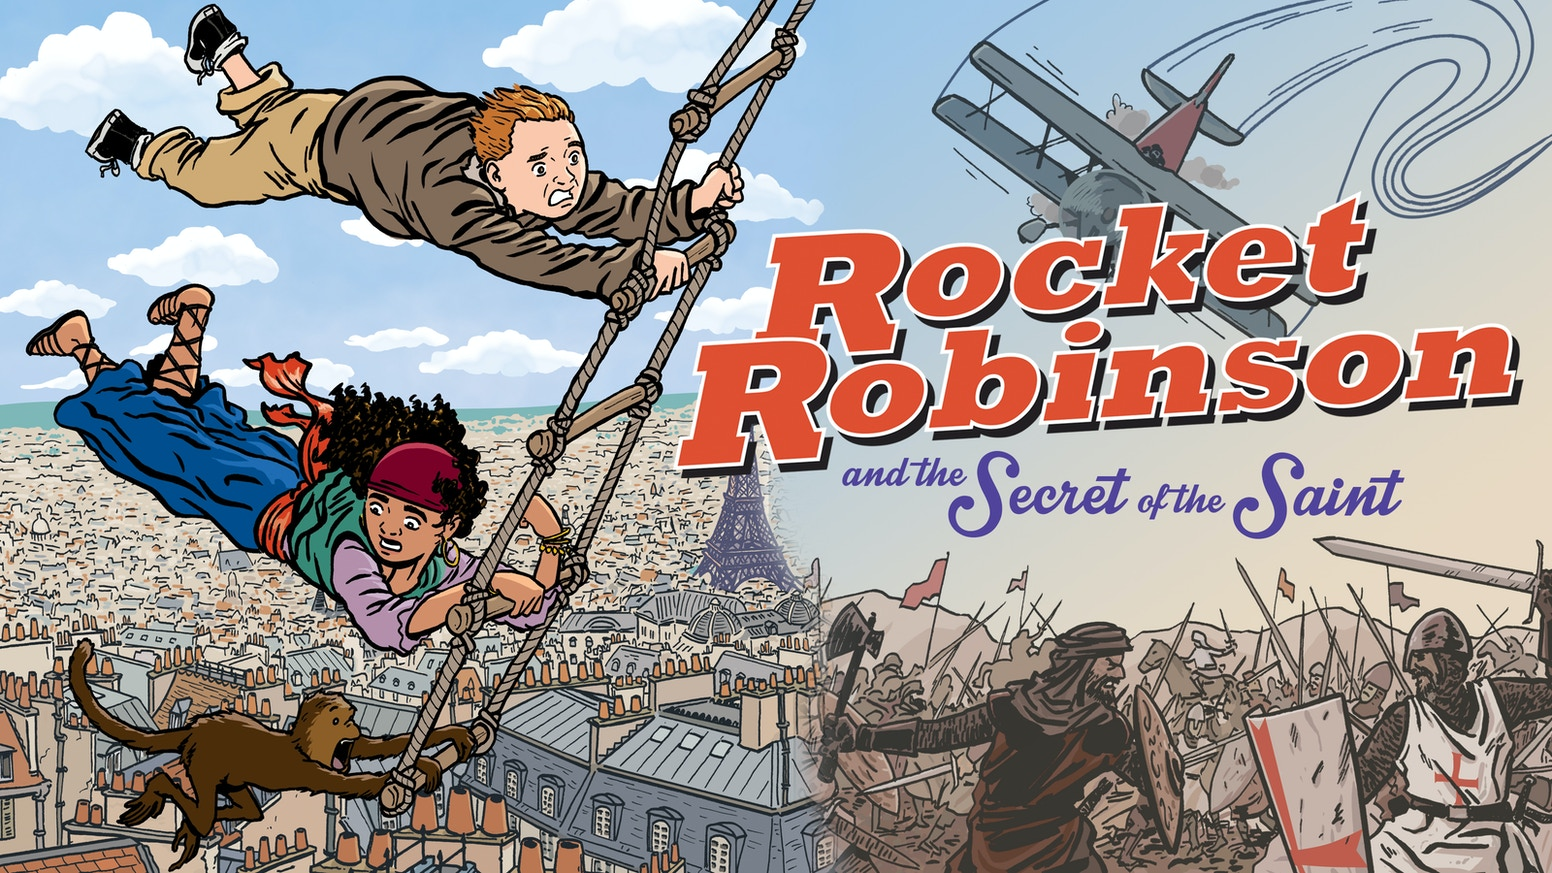 The second adventure in the Rocket Robinson series is here! A fun, action-packed graphic novel for all ages!